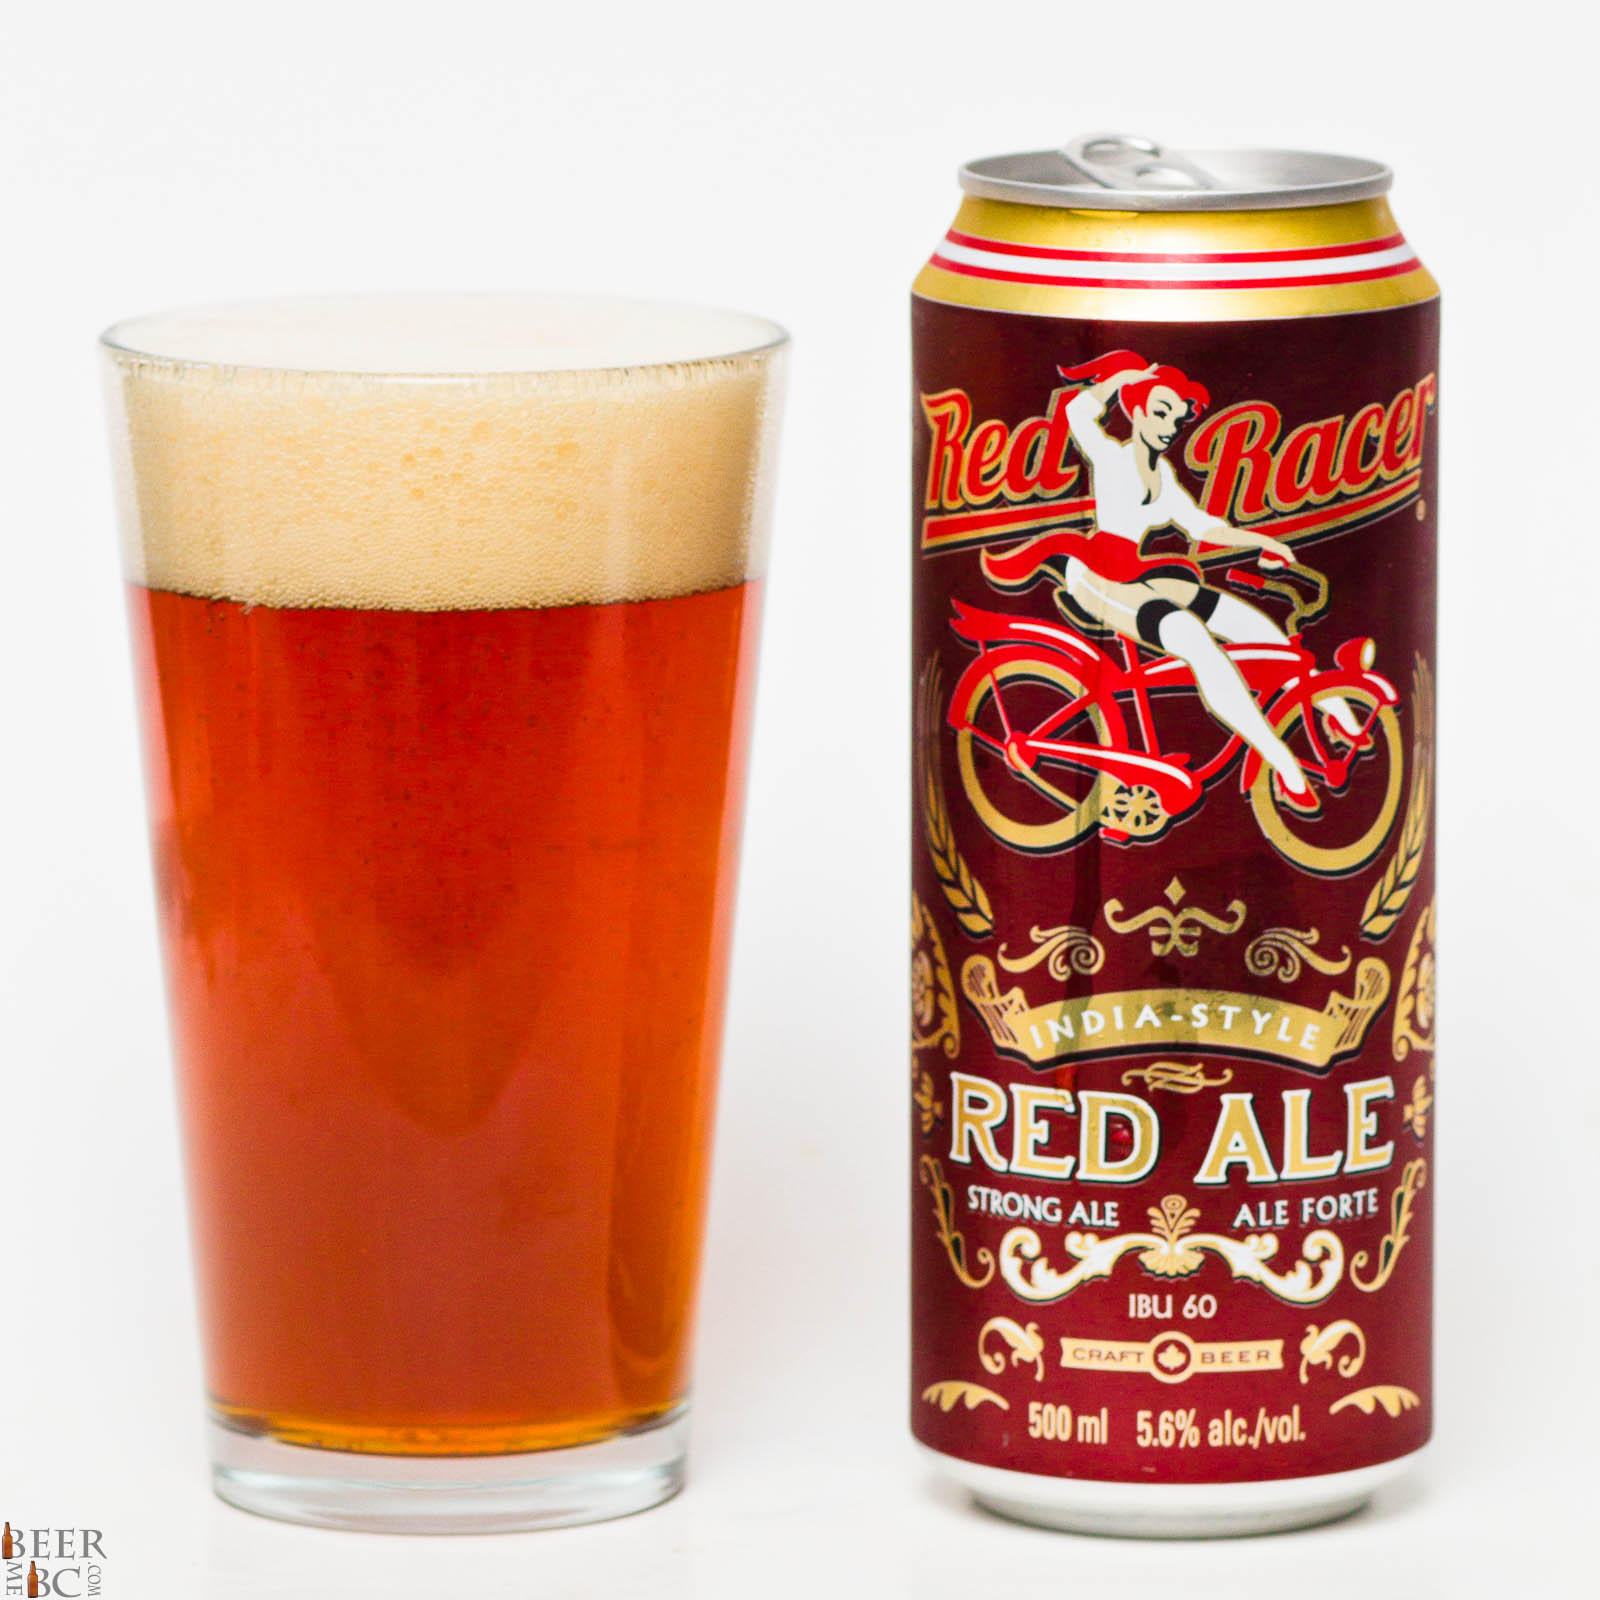 Red Racer Beer �C India Style Red Ale